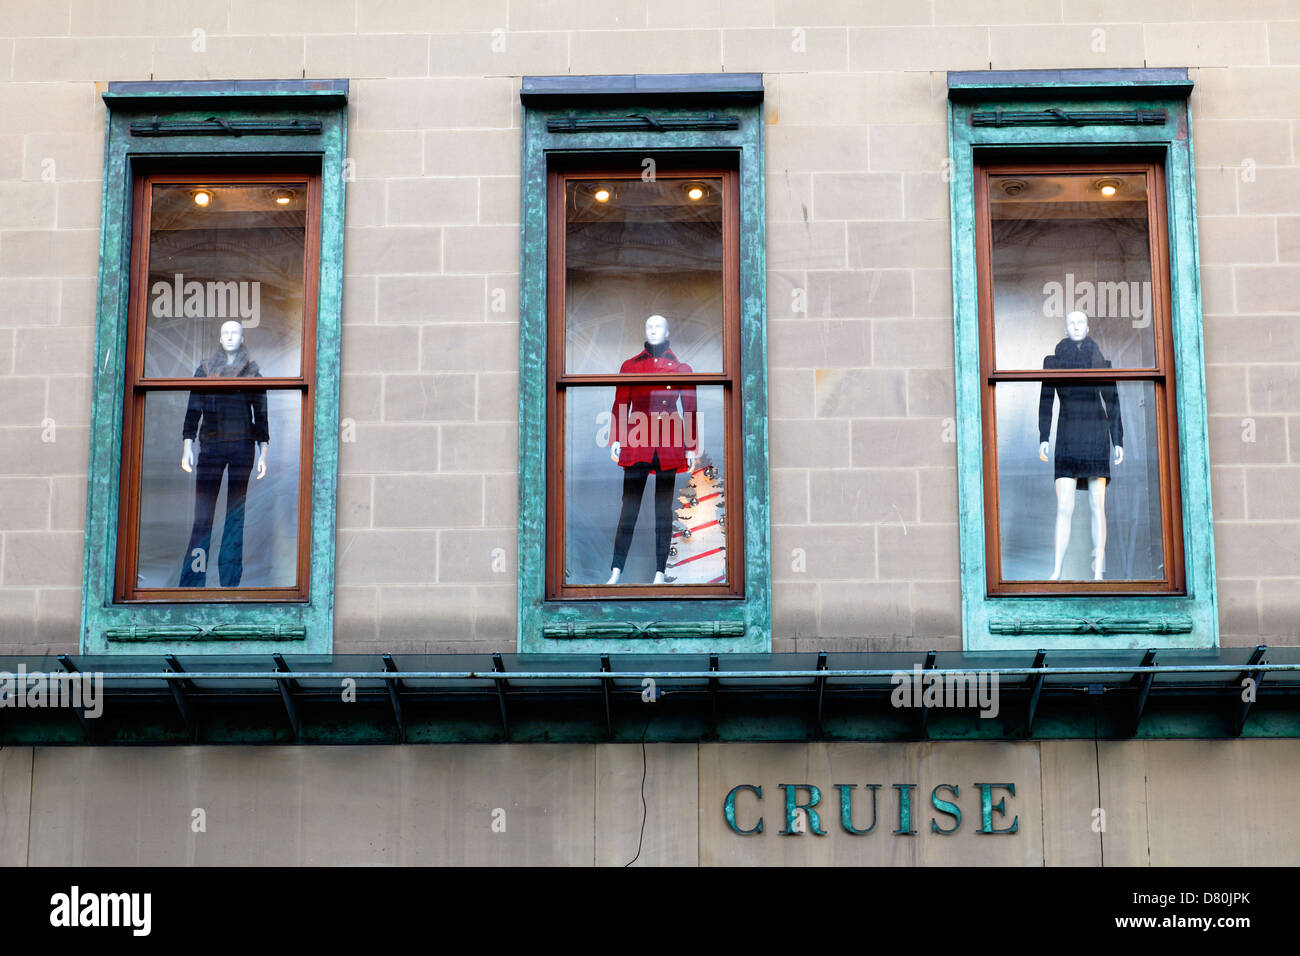 Designer Clothes Glasgow | Shop Window Display At Cruise Designer Clothing Company Glasgow